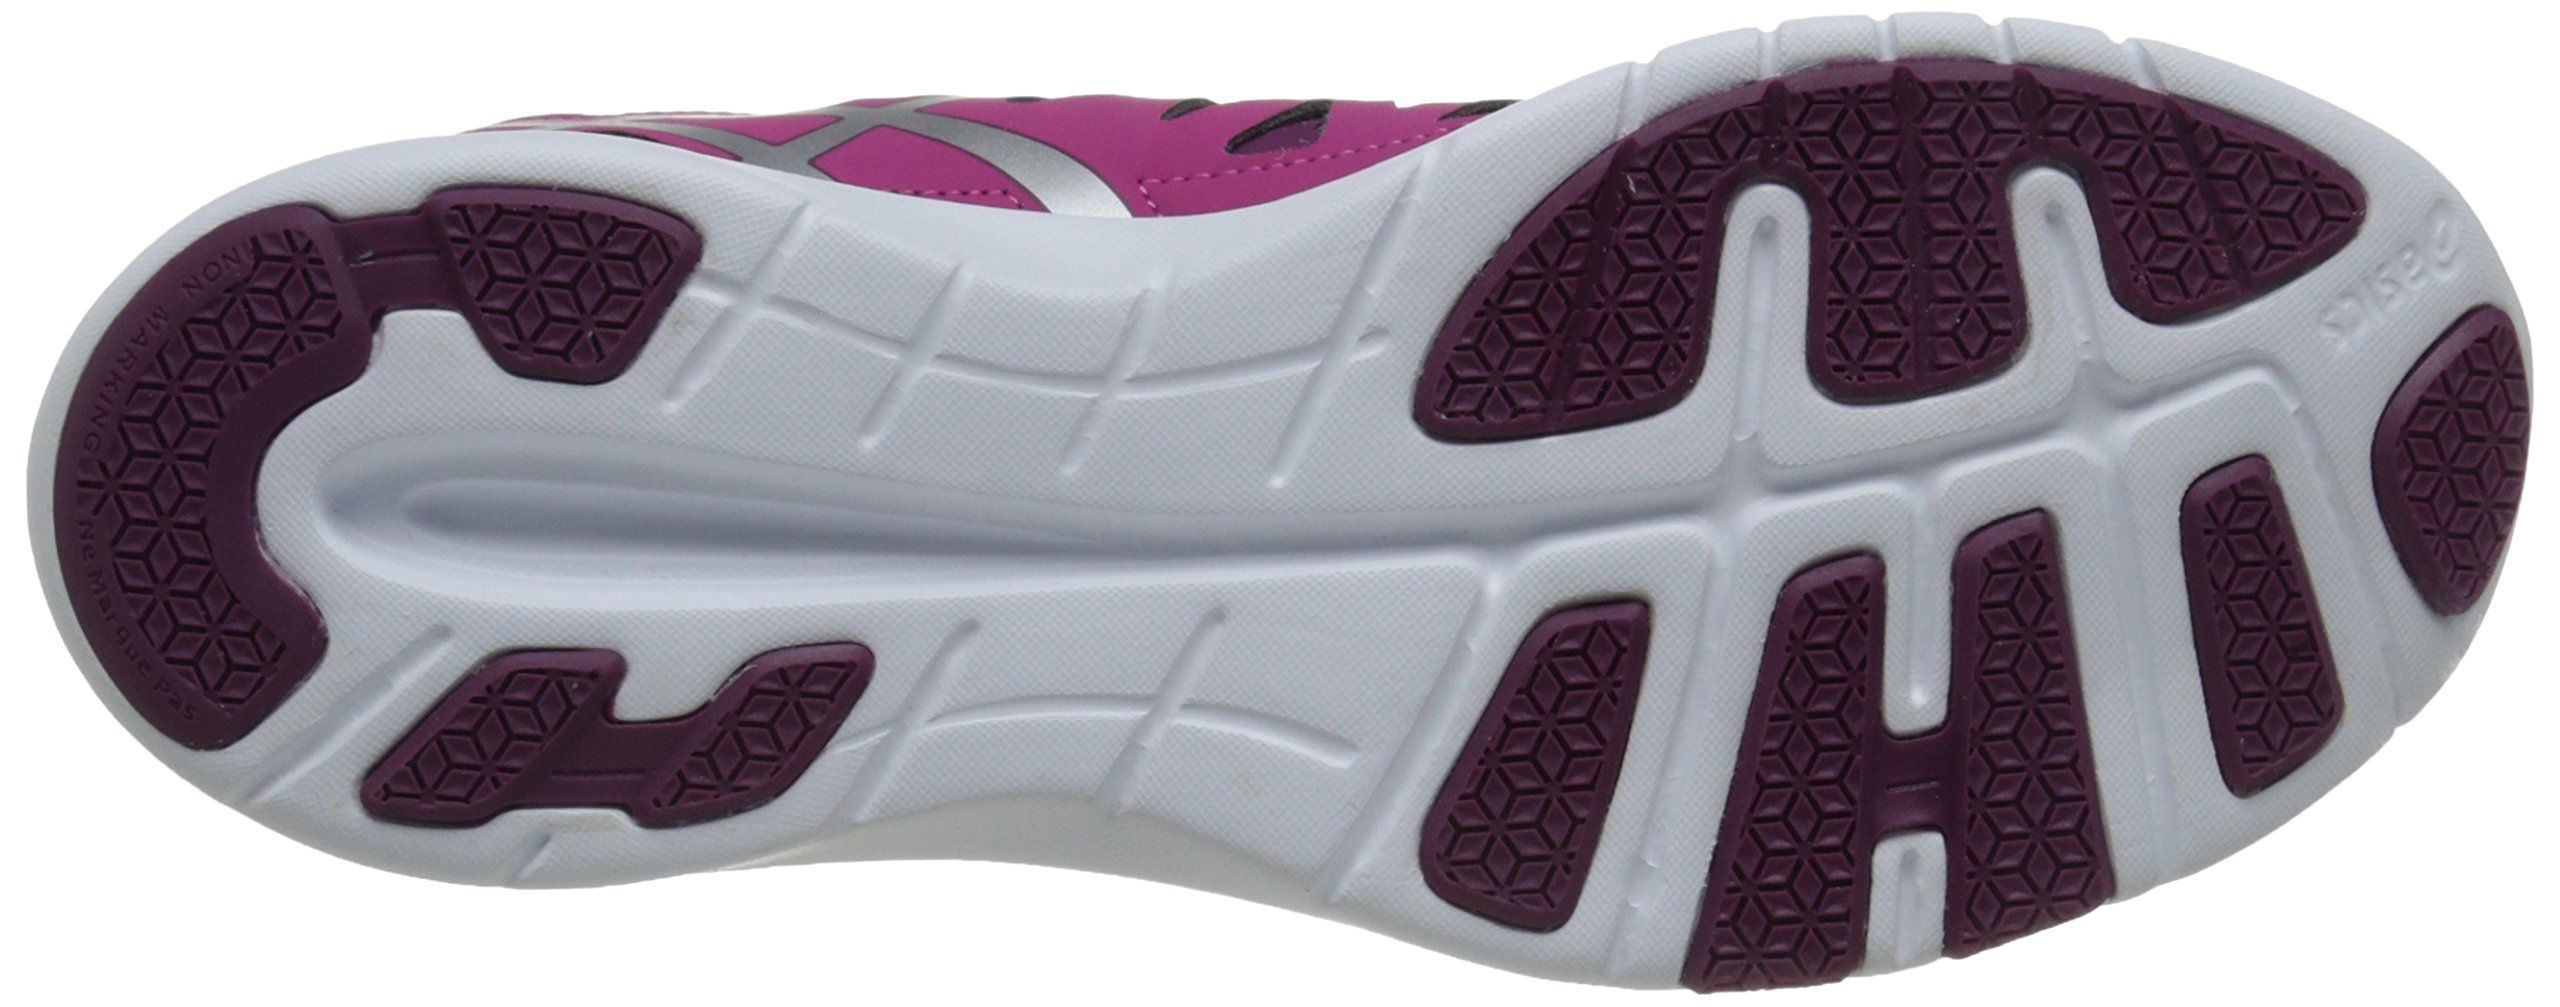 81U2PkijMHL - ASICS Women's Gel Fit Tempo 2 Fitness Shoe